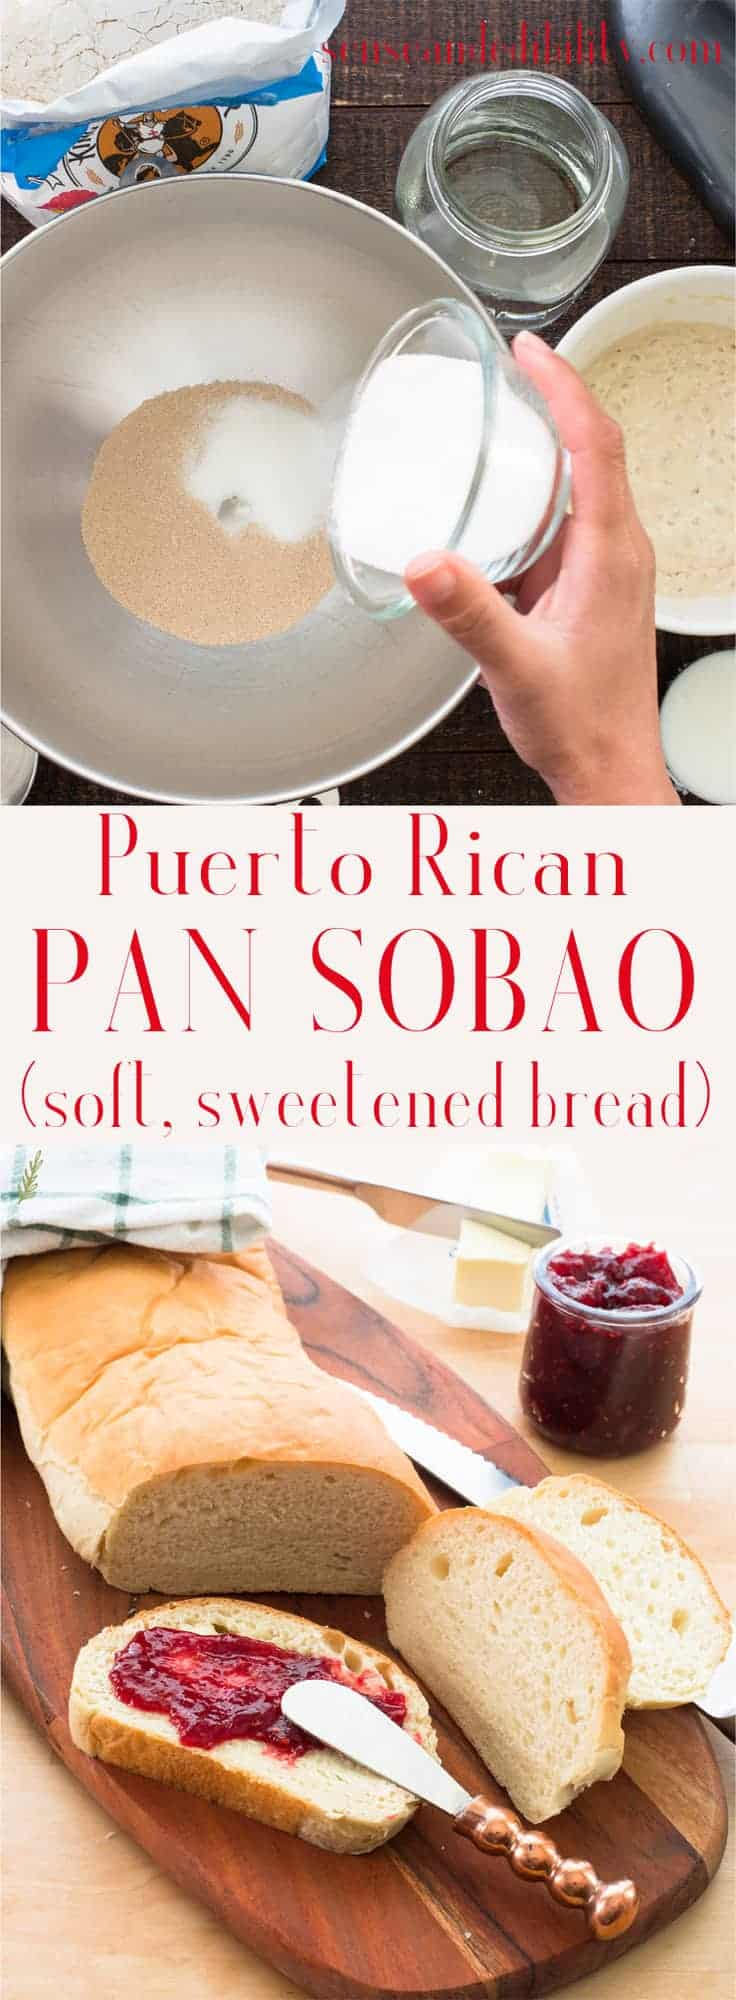 A soft, sweet bread, Pan Sobao is one of Puerto Rico's prized baked goods. It won't last long once you sniff that mouth-watering aroma, so this recipe makes two loaves! #pansobao #PuertoRicanbread #bread #baking #breadmaking #sandwichbread #senseandedibility  via @ediblesense